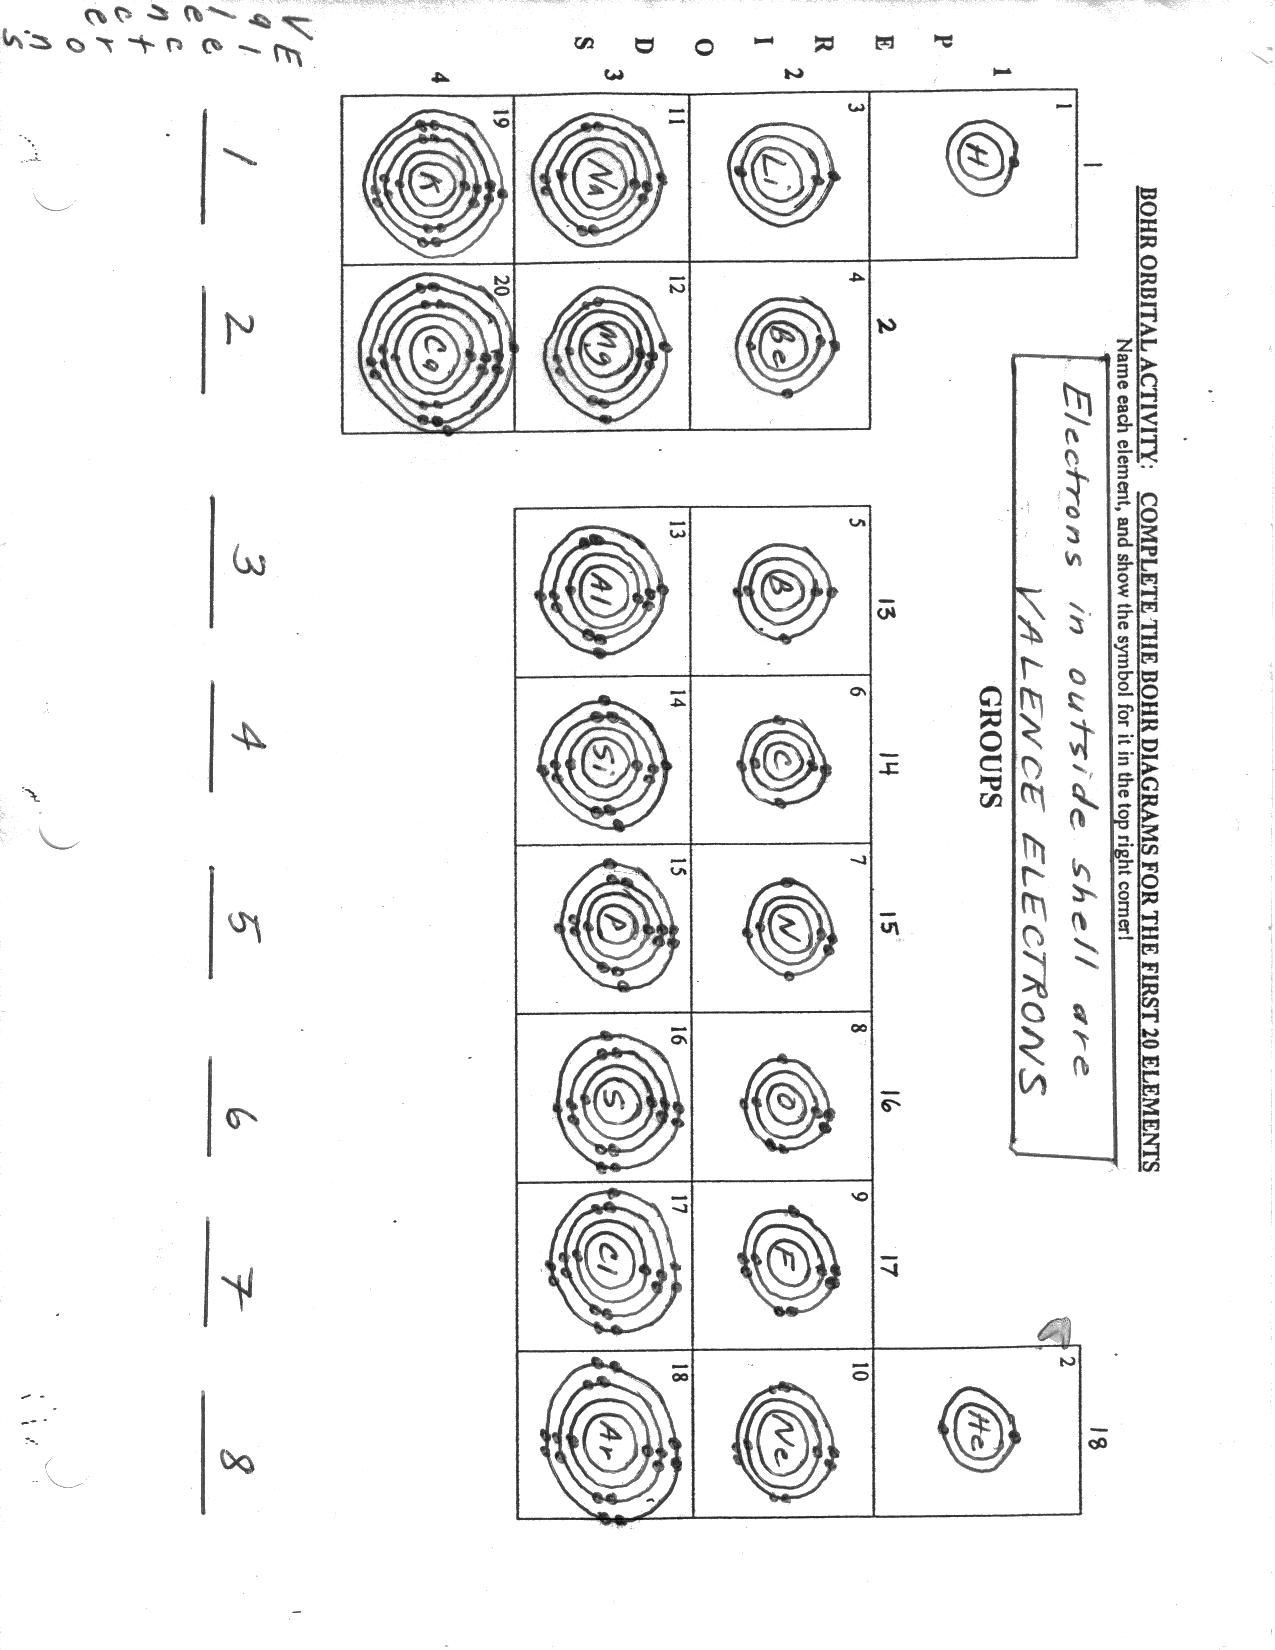 Bohr Model Diagrams Worksheet Answers